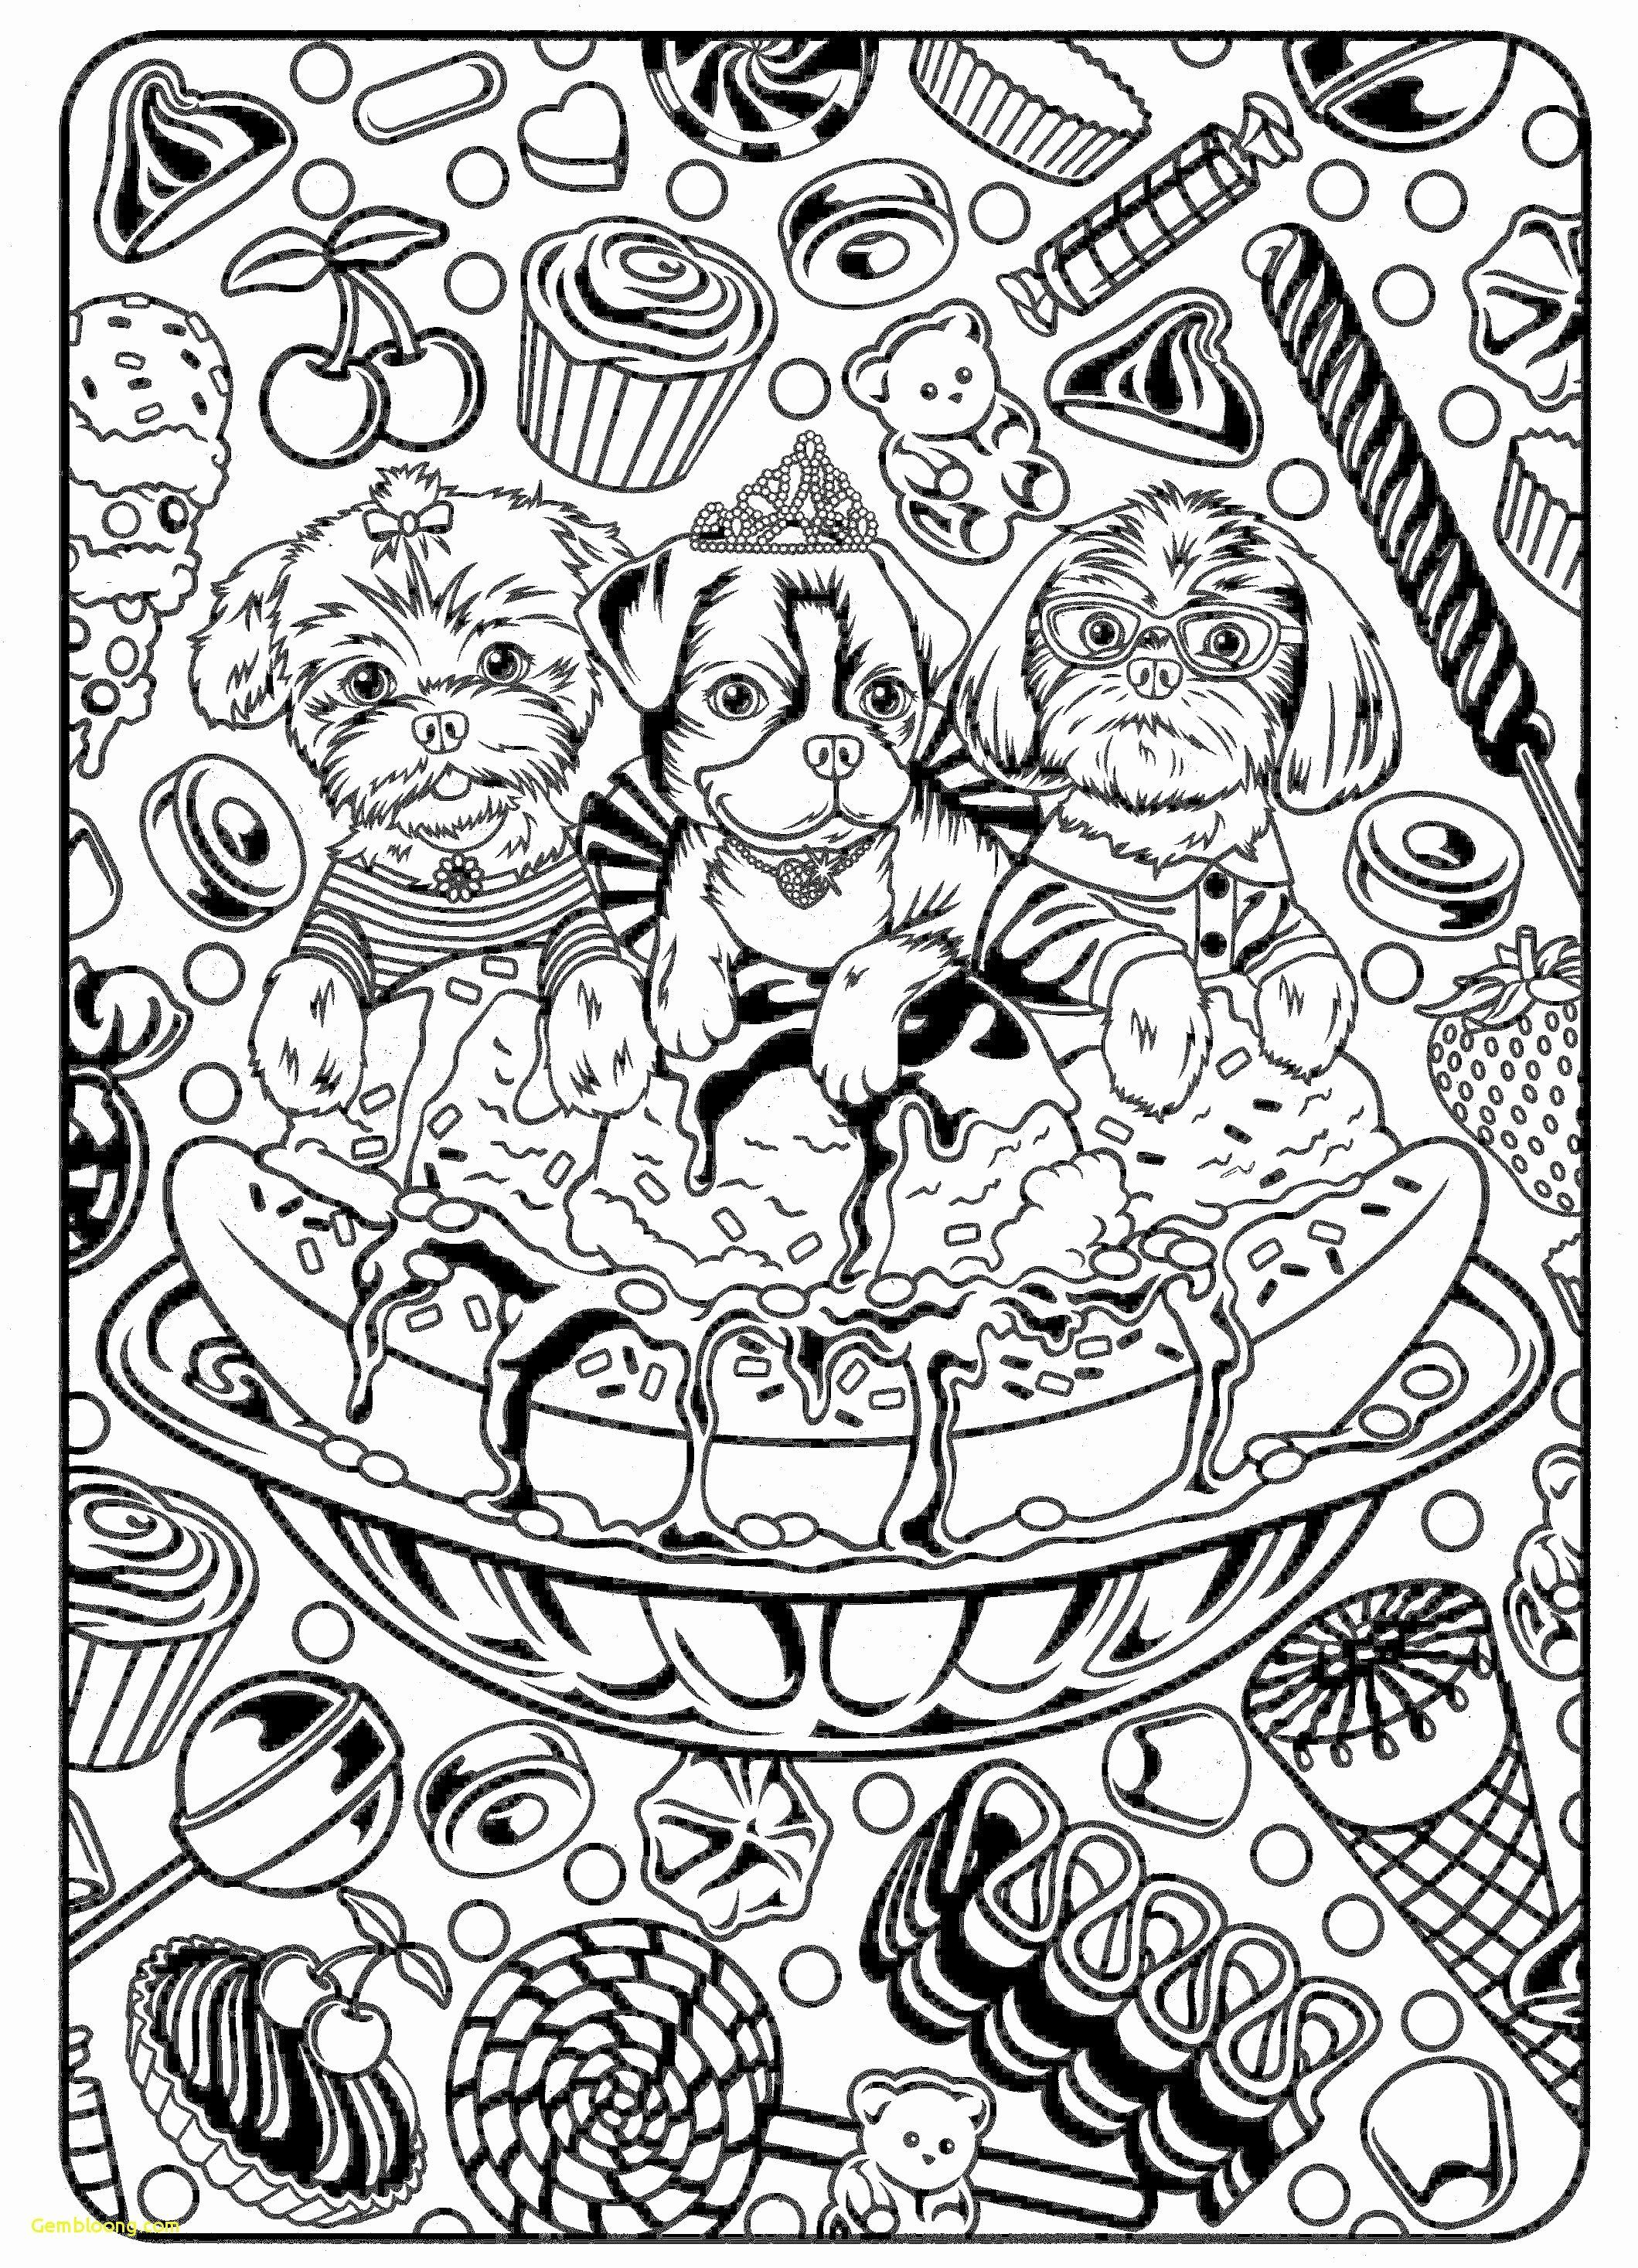 Big Coloring Pages For Adults Lovely Printable Butterfly Coloring Pages Cool Coloring Pages Pokemon Coloring Pages Space Coloring Pages